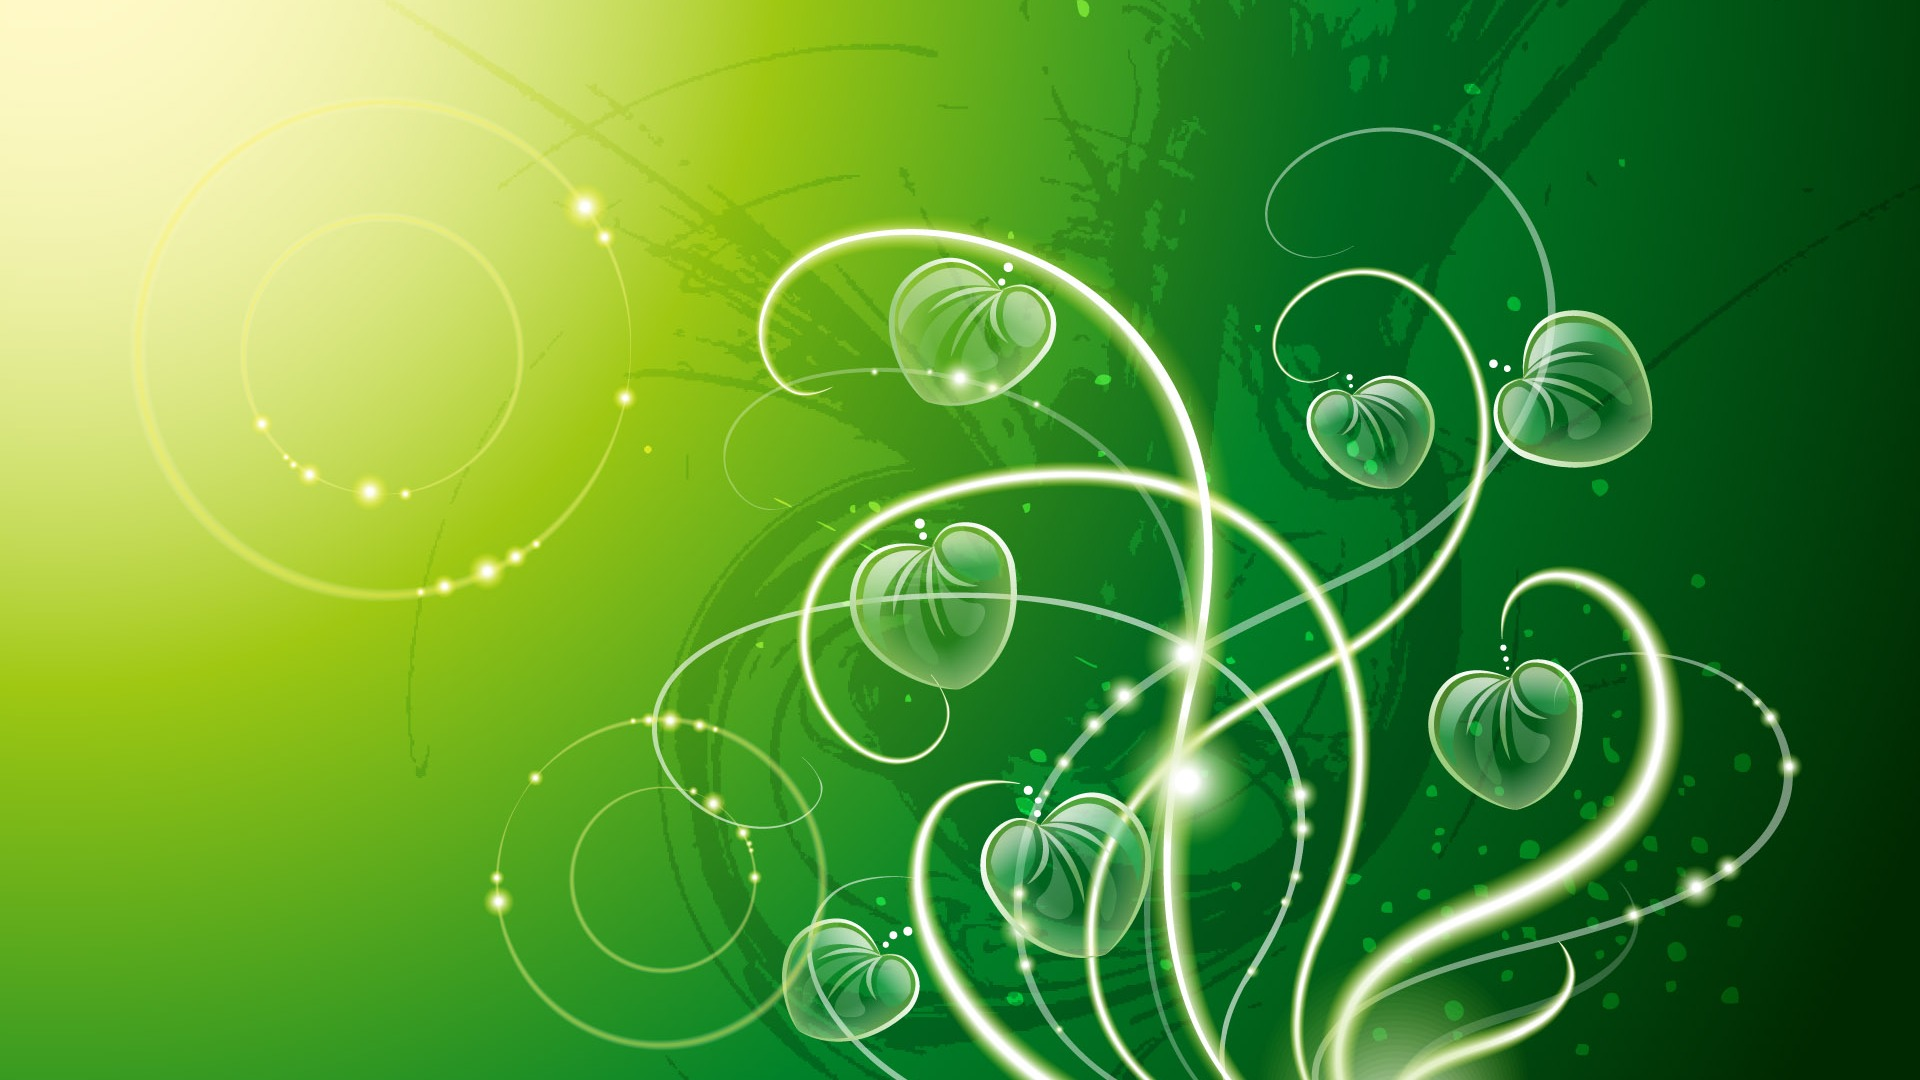 Abstract wallpapers green #9